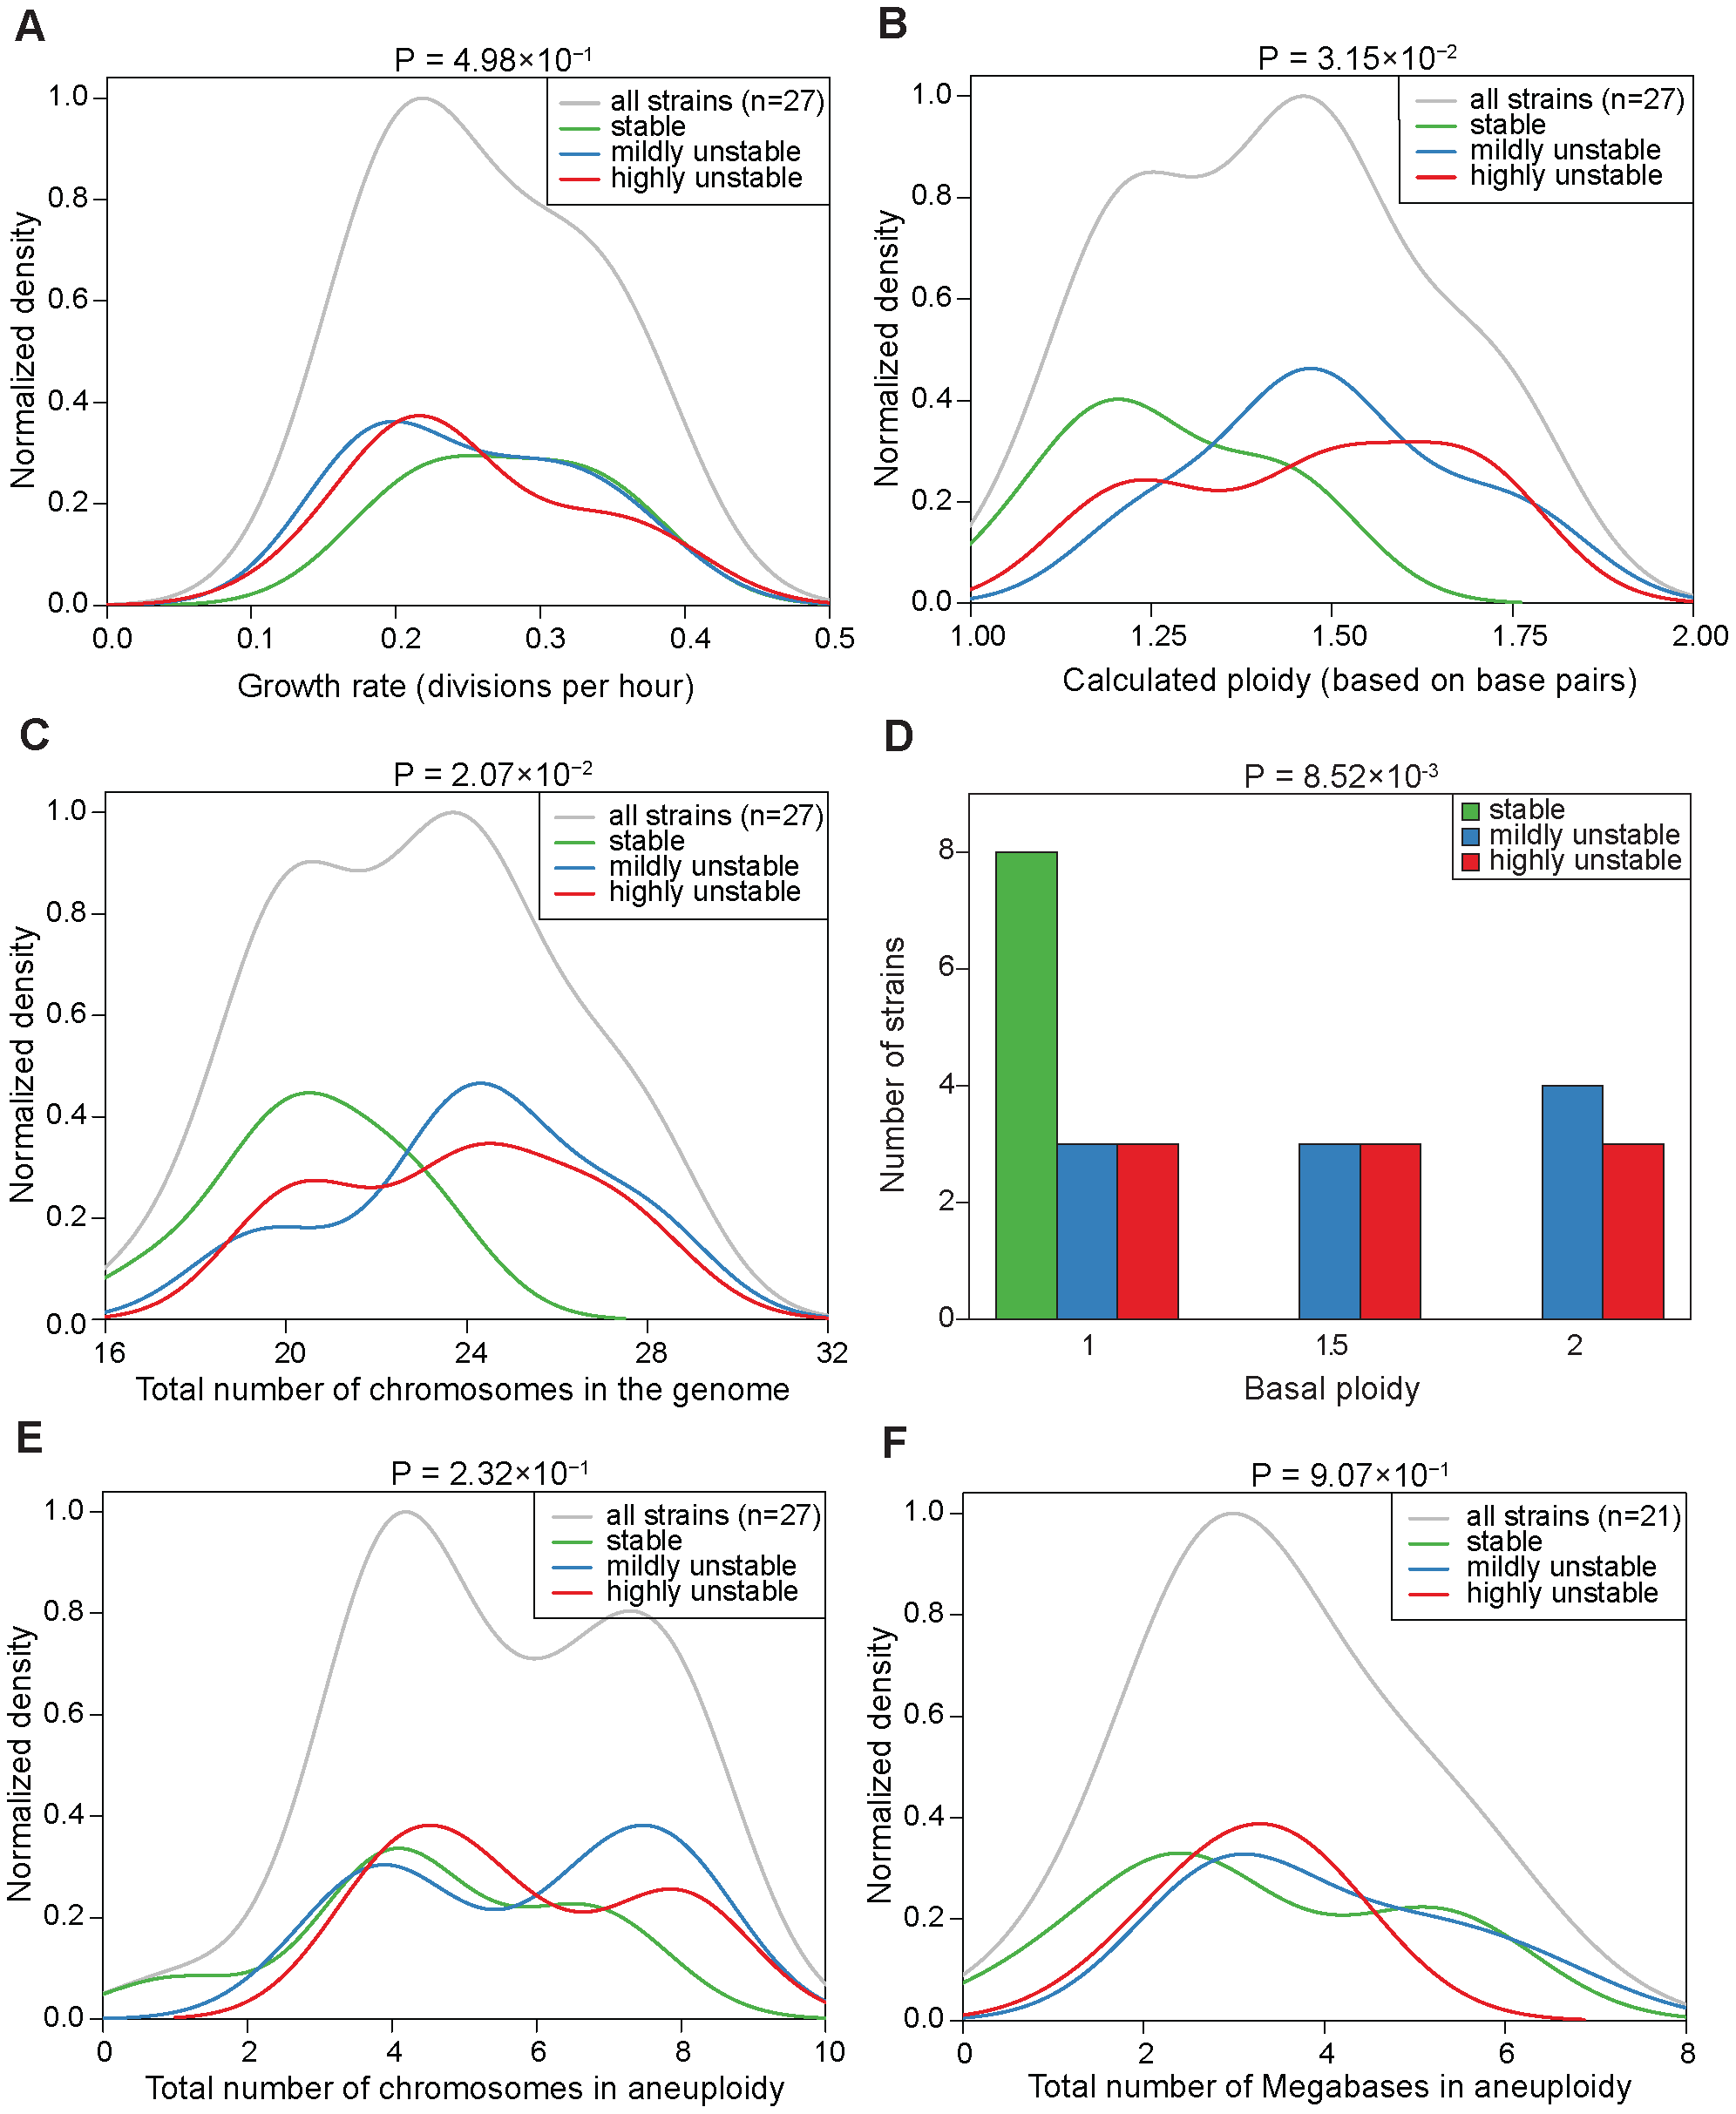 Correlations between CIN and growth rate, total genome content, or degree of aneuploidy across the aneuploid strains.